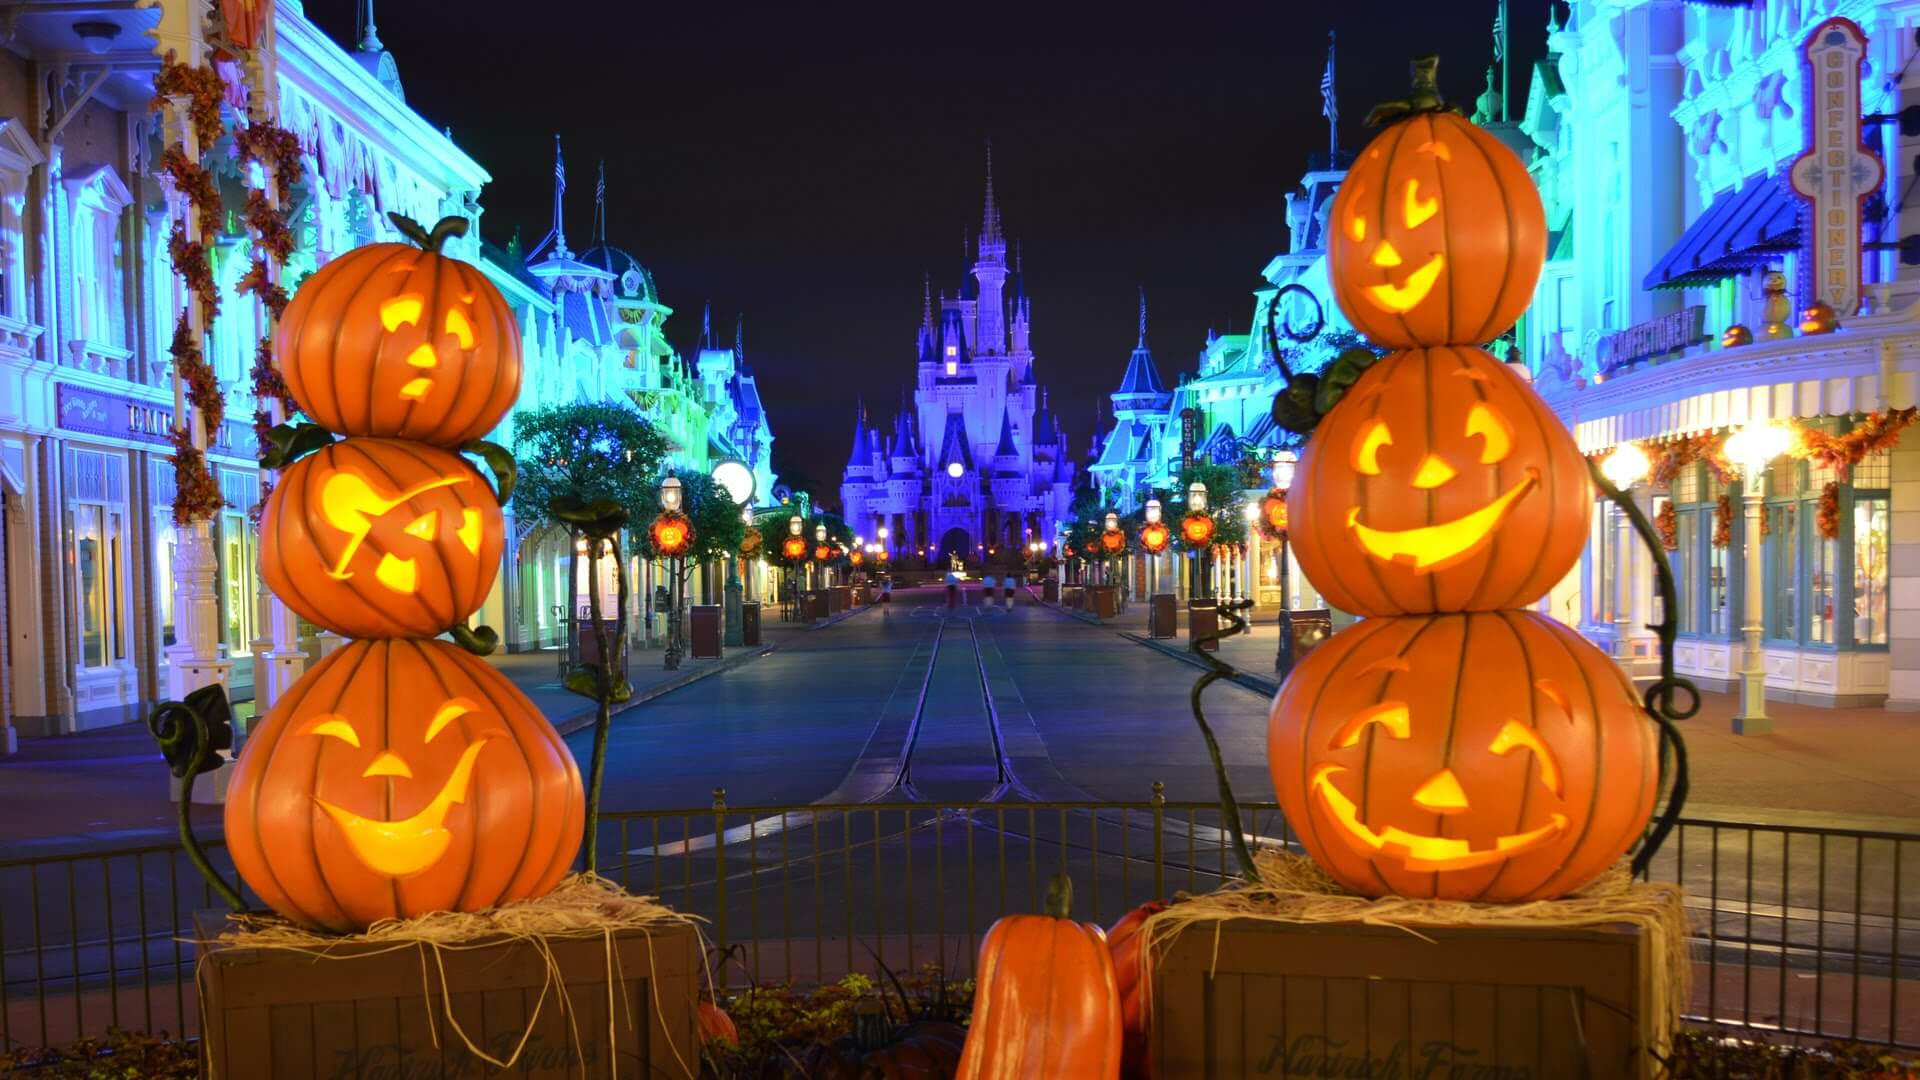 dates announced for mickey's not-so-scary halloween party and very